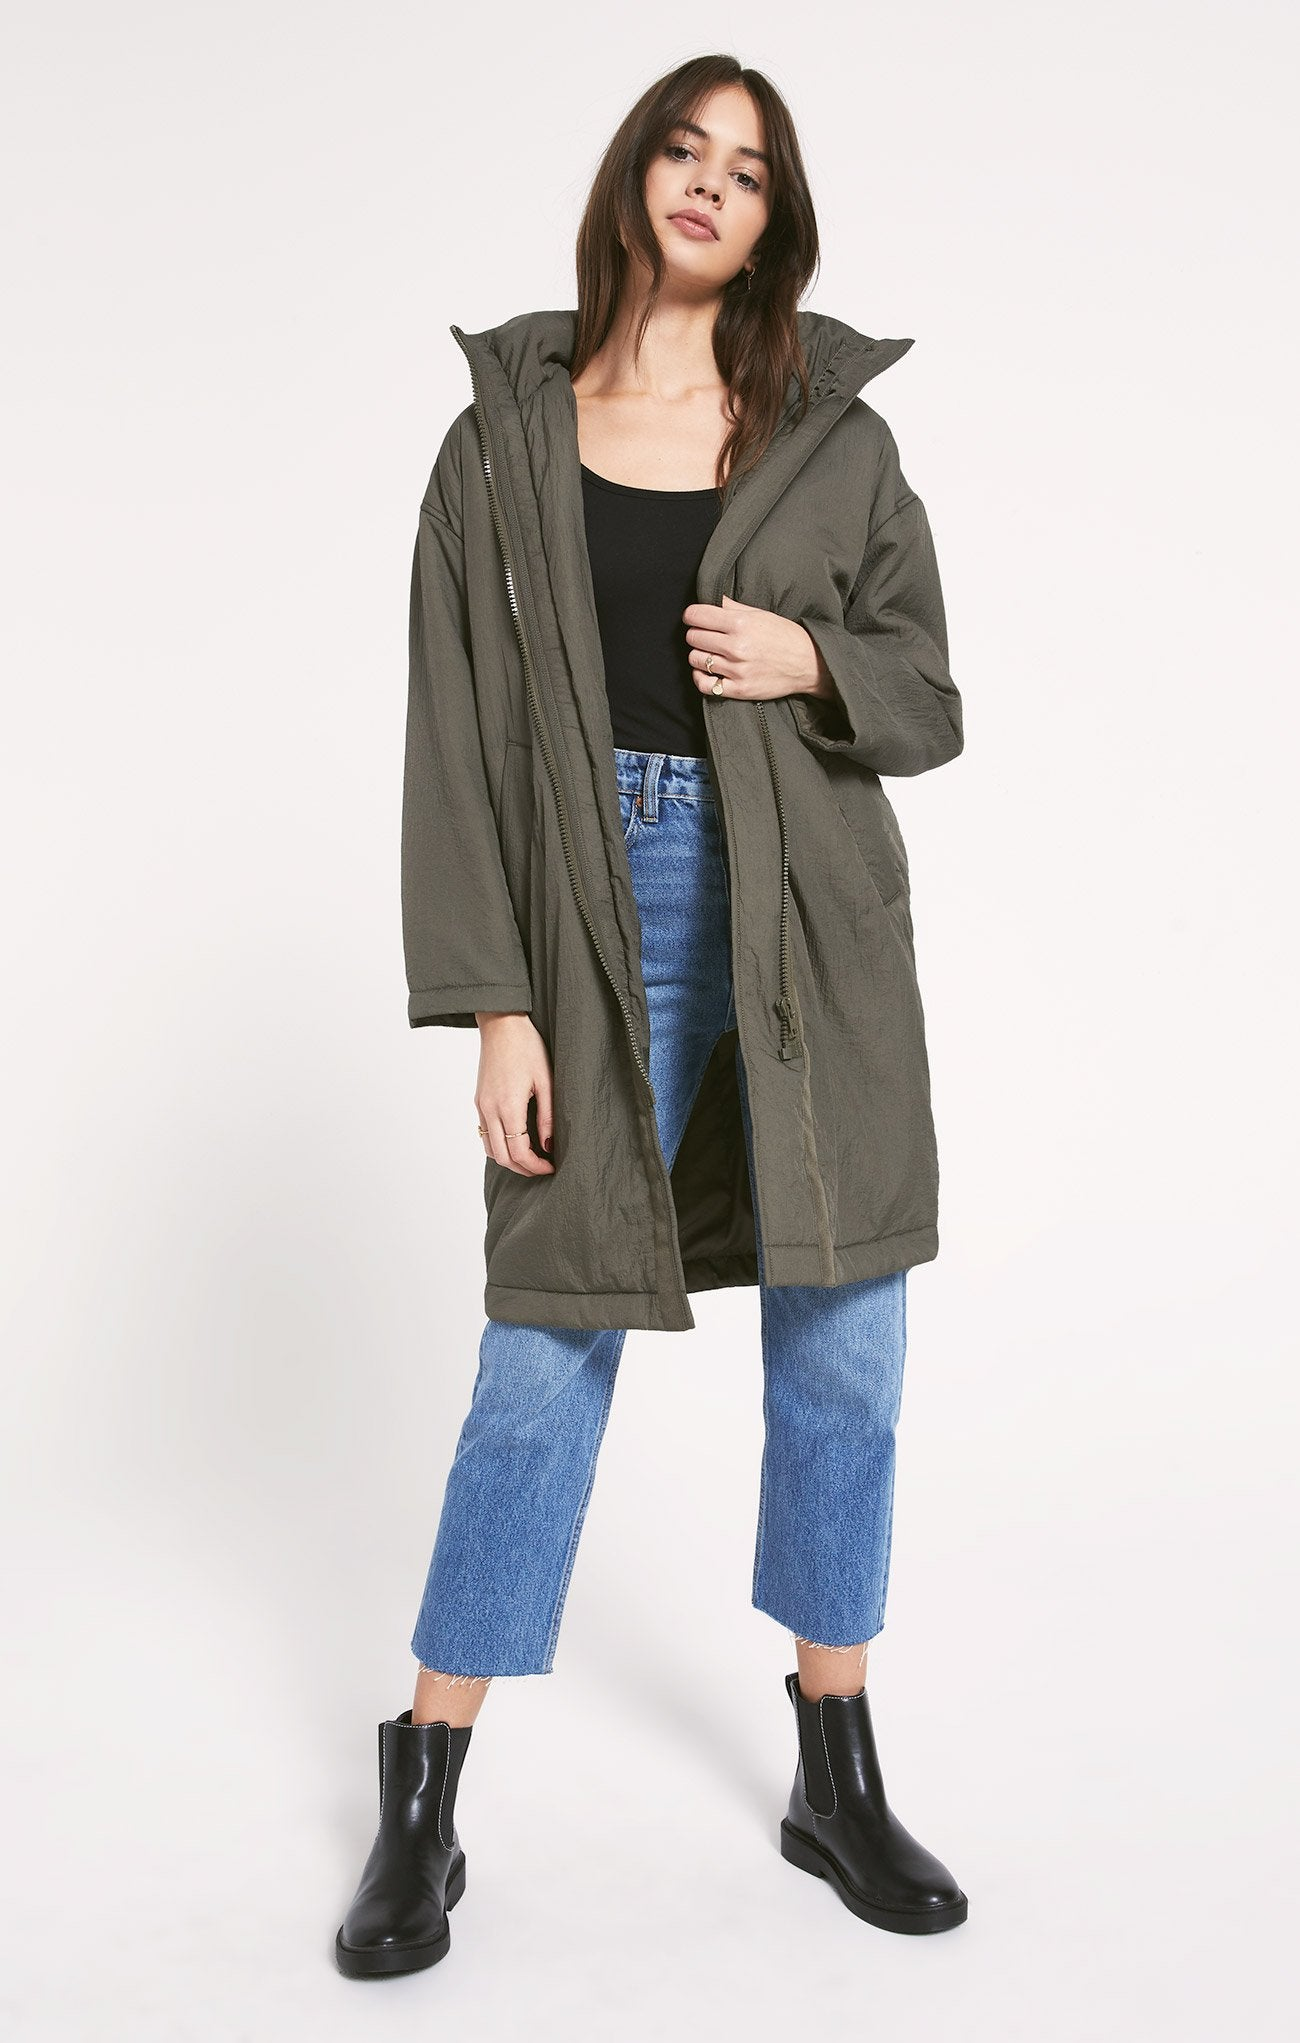 RAG POETS Women's Outerwear Rag Poets Helsinki Jacket || David's Clothing